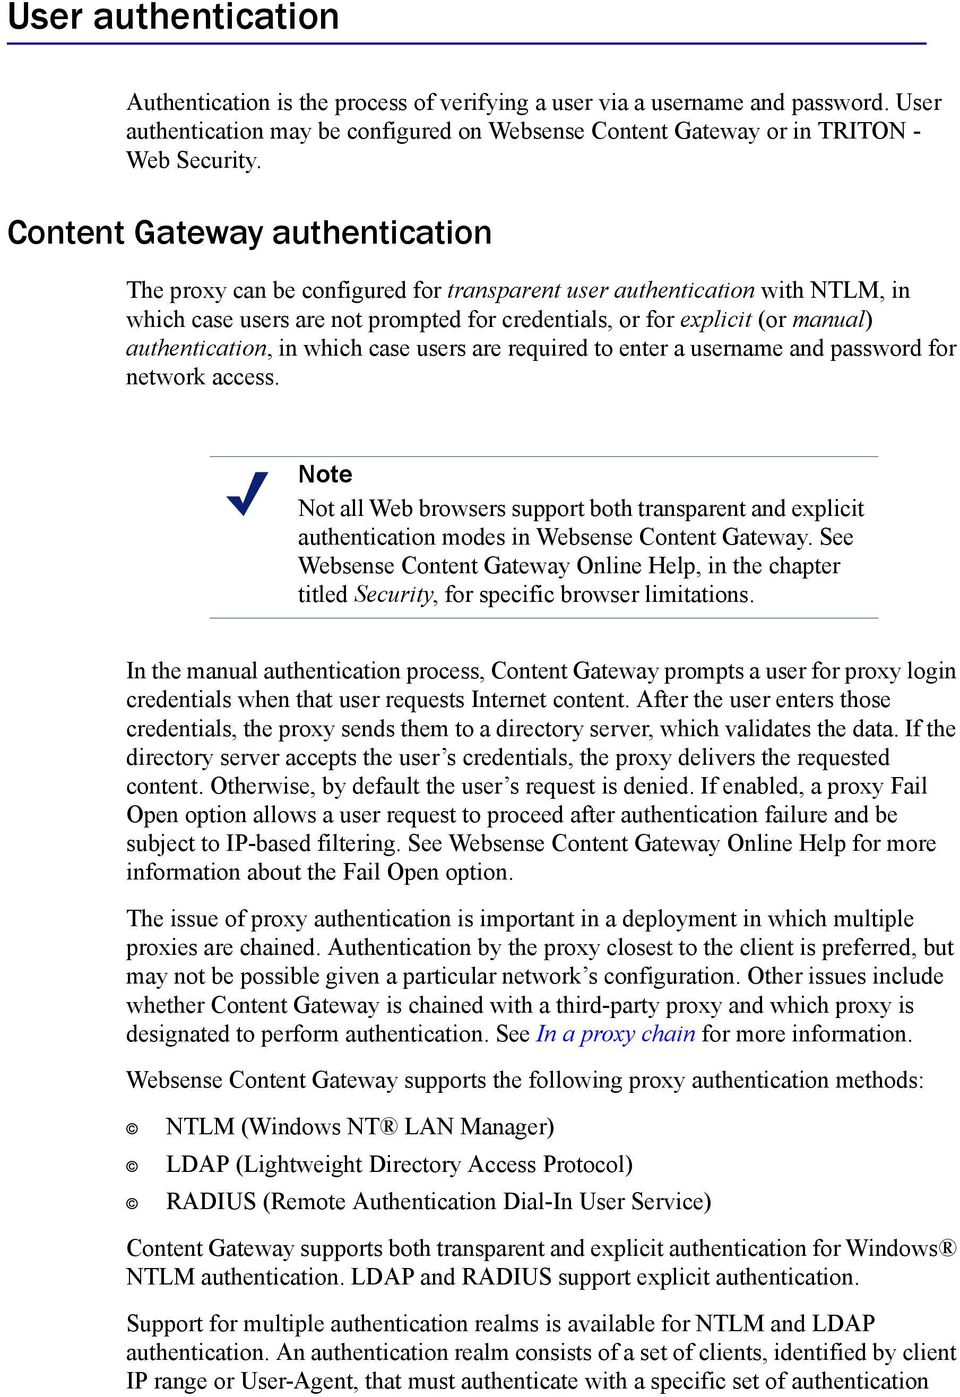 Deploying with Websense Content Gateway - PDF